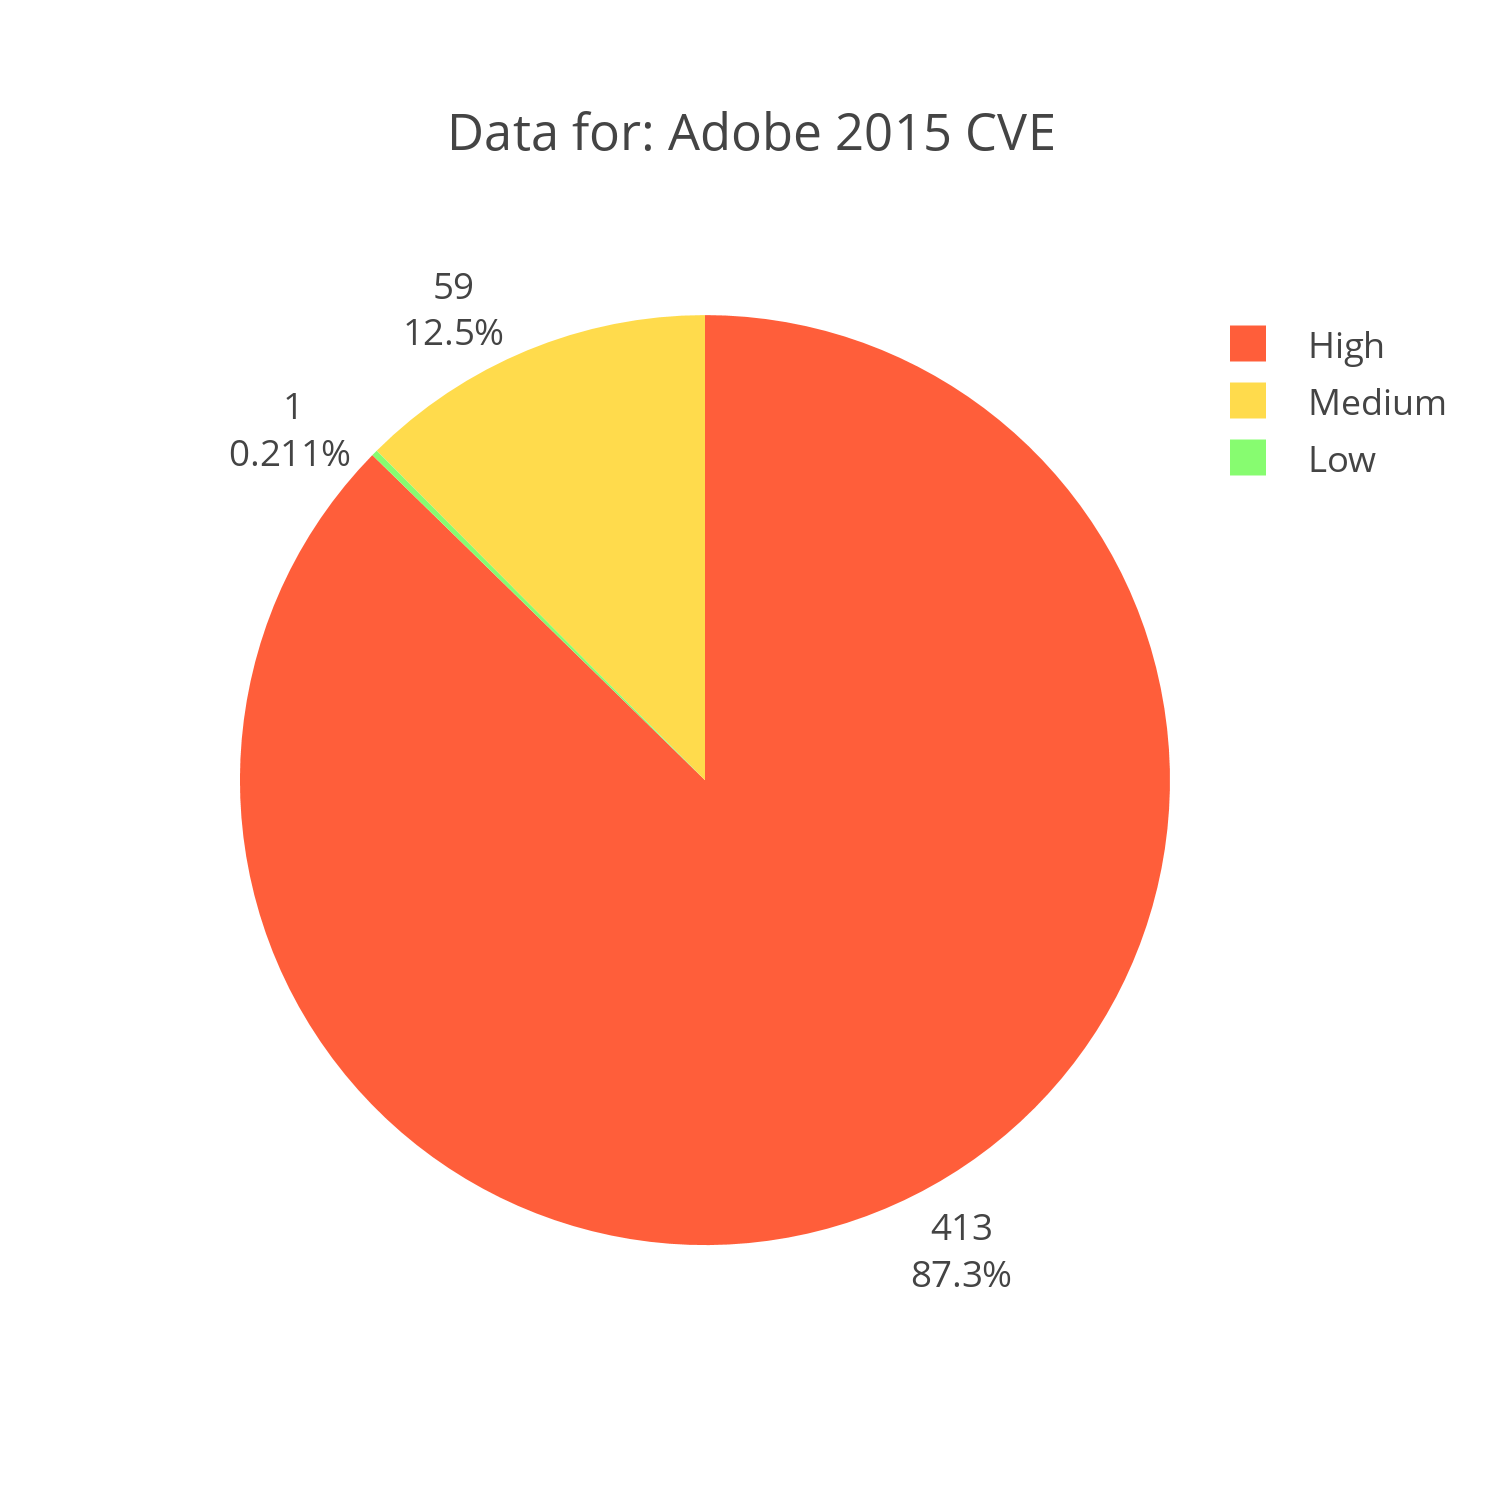 Adobe CVE reports for 2015 distributed by severity